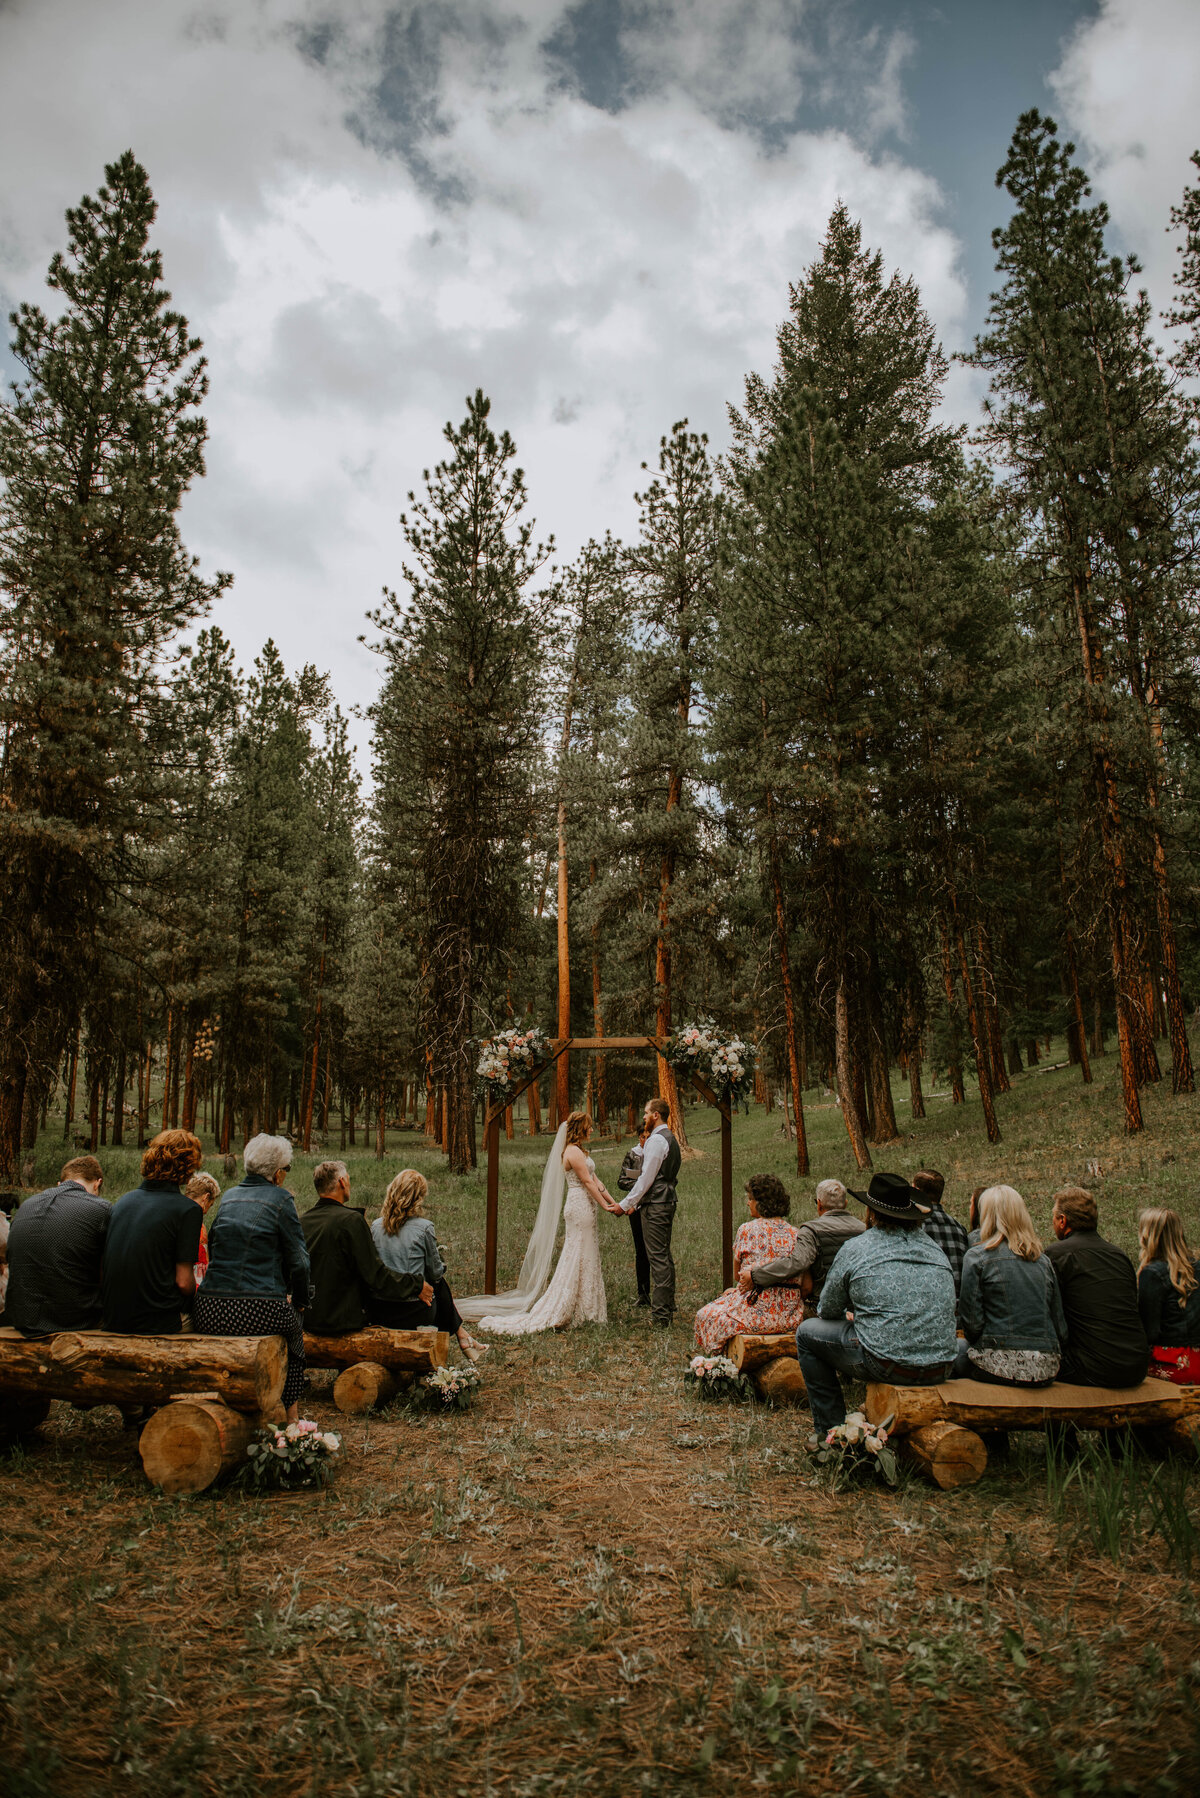 ochoco-forest-central-oregon-elopement-pnw-woods-wedding-covid-bend-photographer-inspiration2123